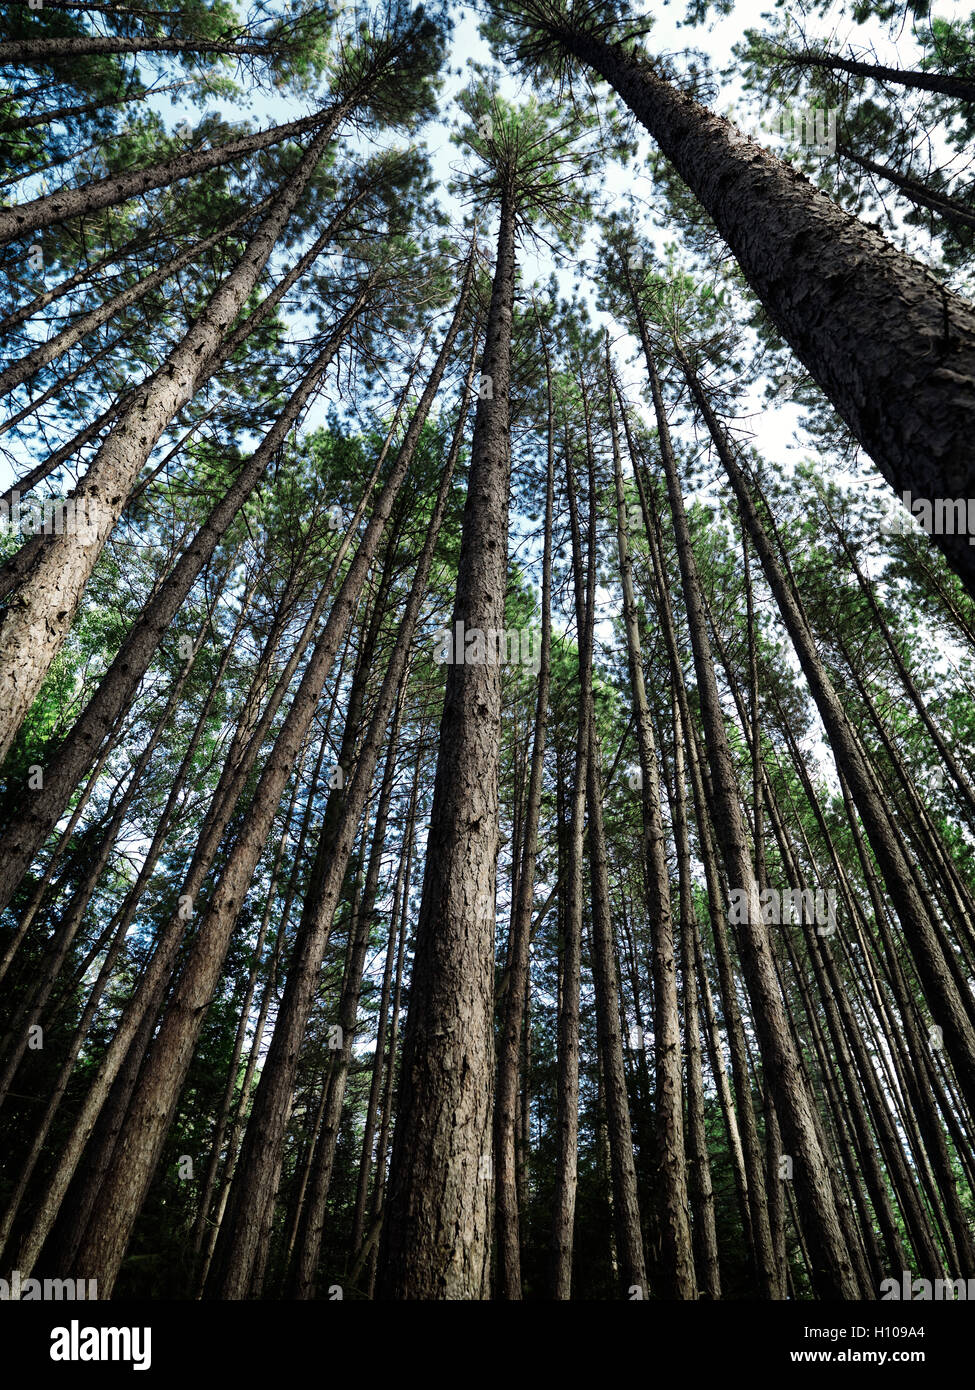 Artistic abstract image of tall pine tree forest, Muskoka, Ontario, Canada - Stock Image